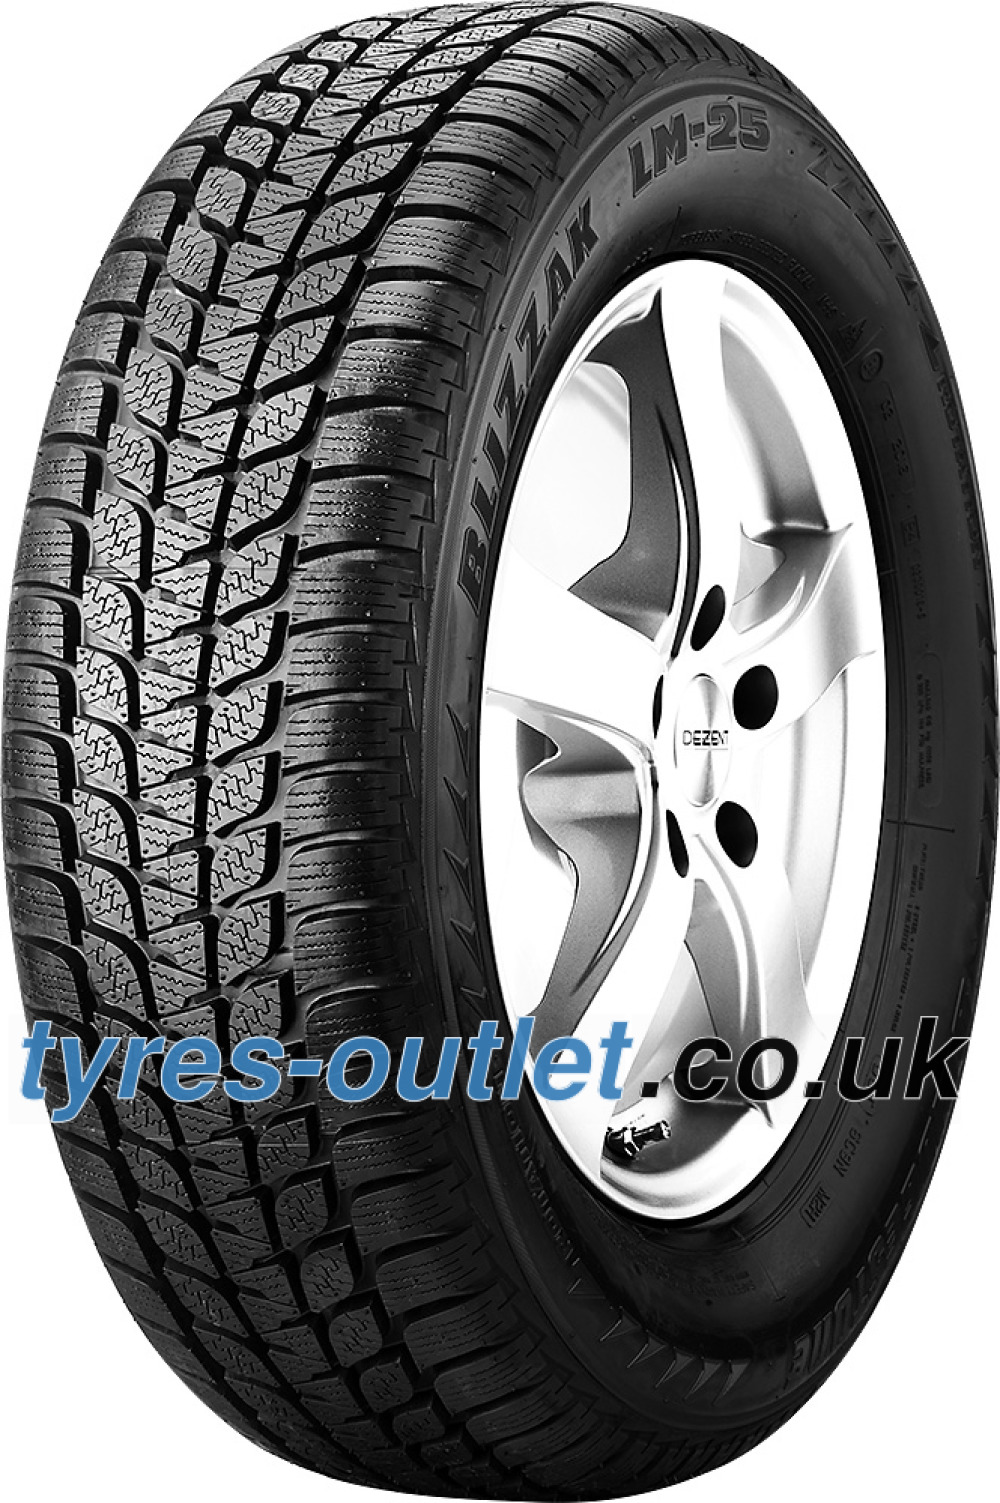 Bridgestone Blizzak LM-25 RFT ( 205/55 R16 91H , runflat, *, with rim protection (MFS) )